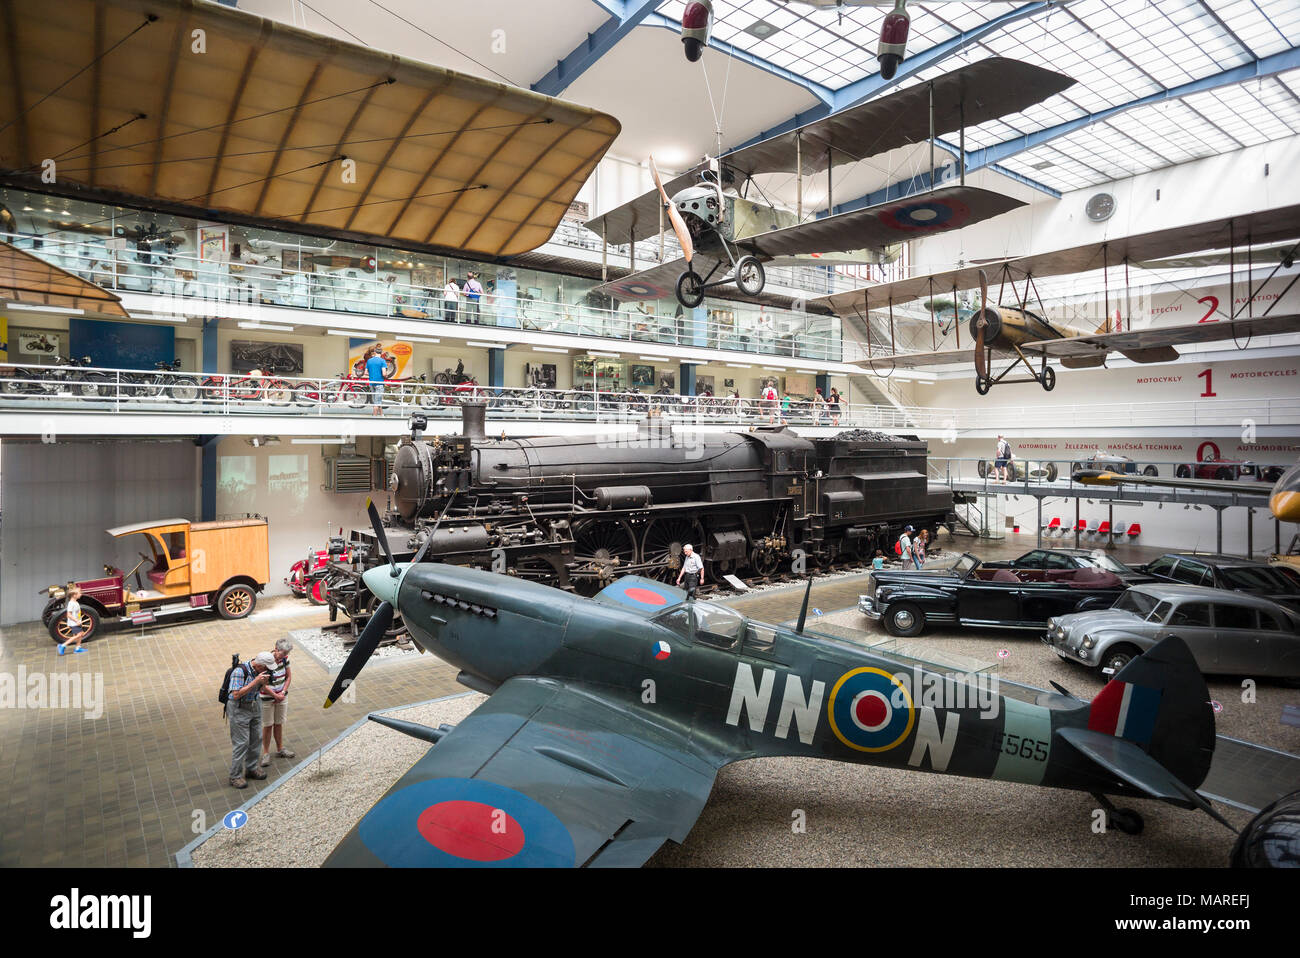 Prague. Czech Republic. Spitfire, Interior of the National Technical Museum NTM (Národní technické muzeum).  Foreground is the British Supermarine Spi - Stock Image